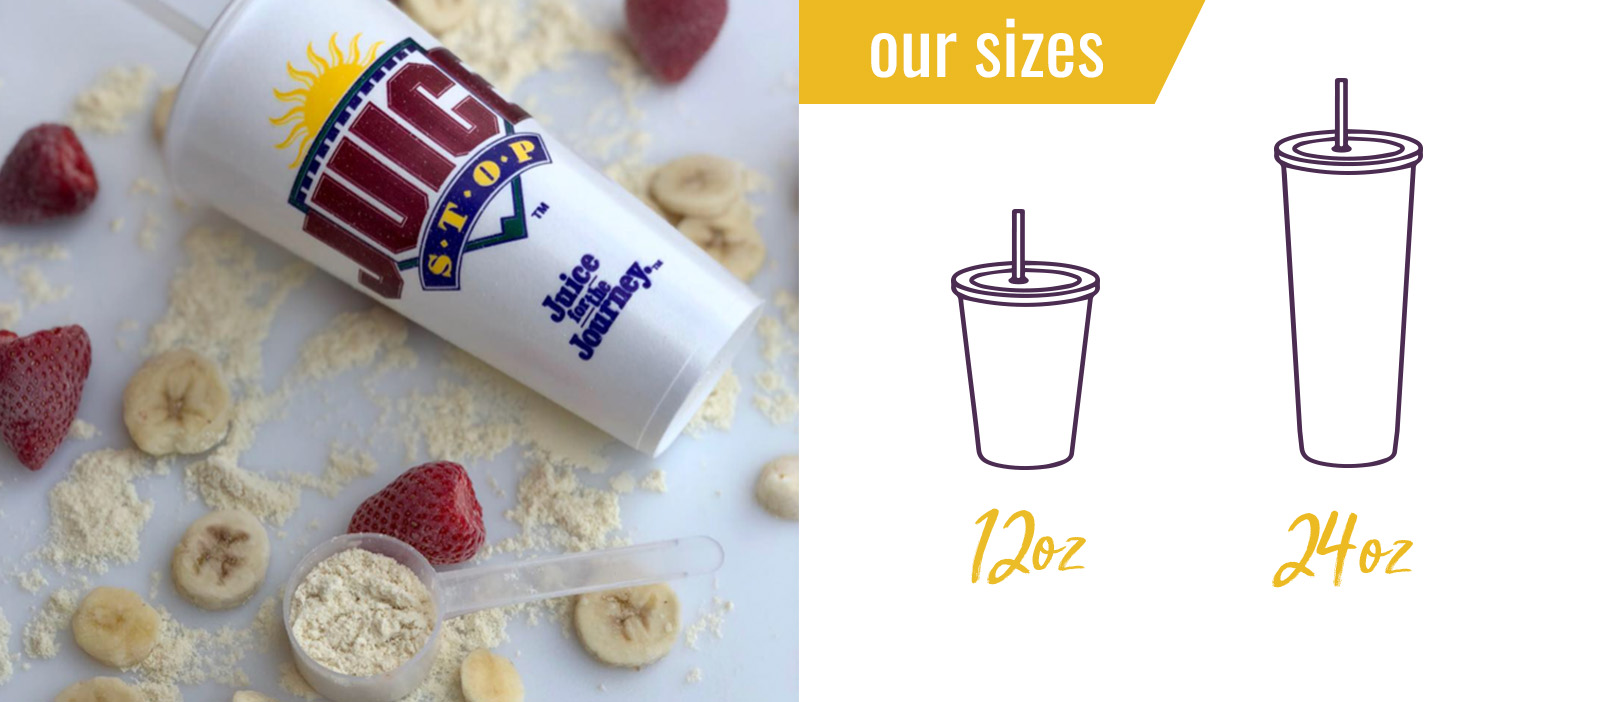 Smoothie Sizes Banner